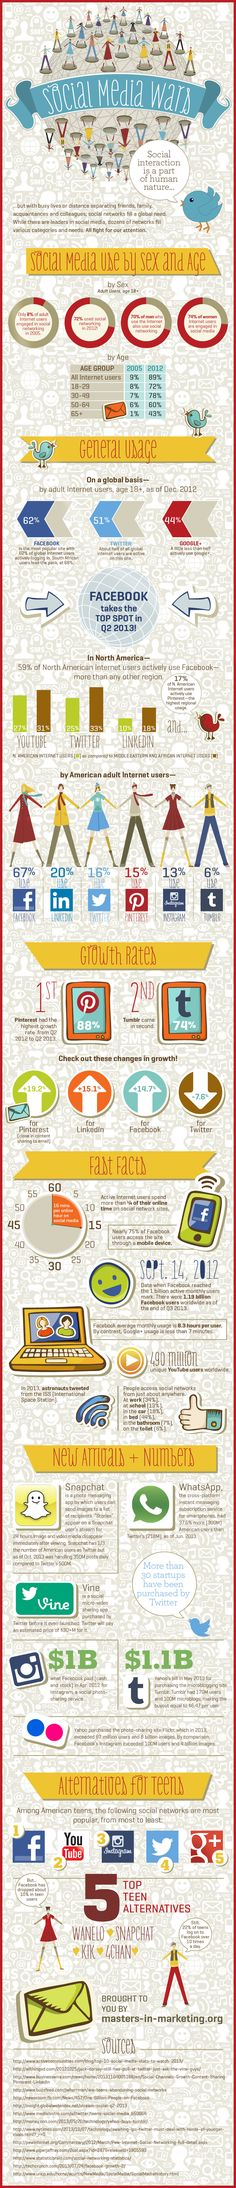 Social Media Wars: Who Conquers Them All? [INFOGRAPHIC]